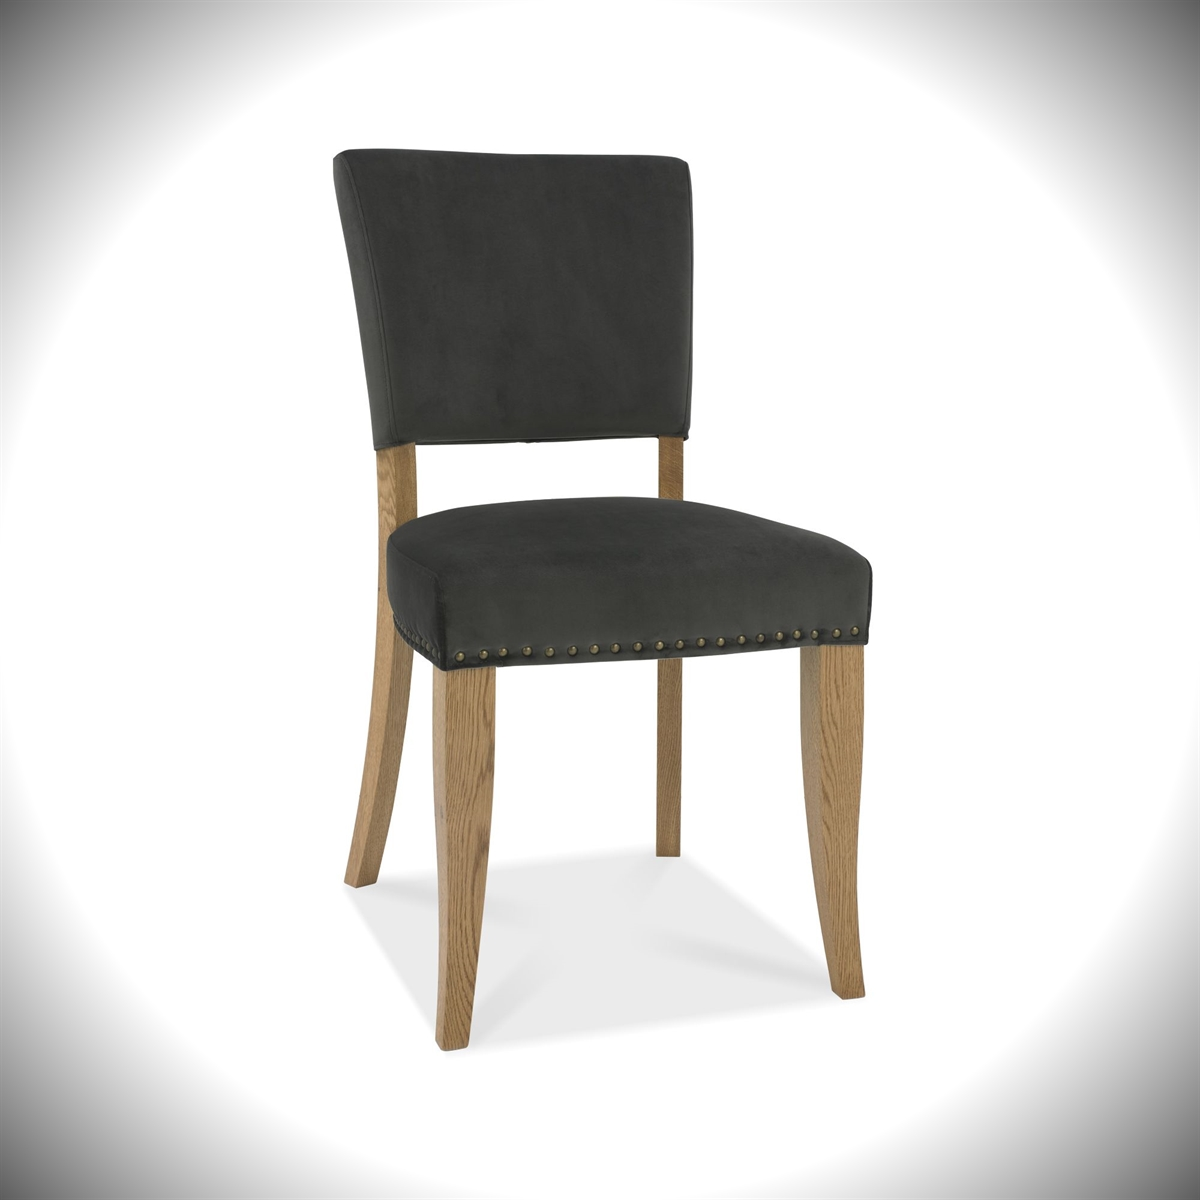 Rustic Oak - Upholstered Velvet Chair - Gun Metal